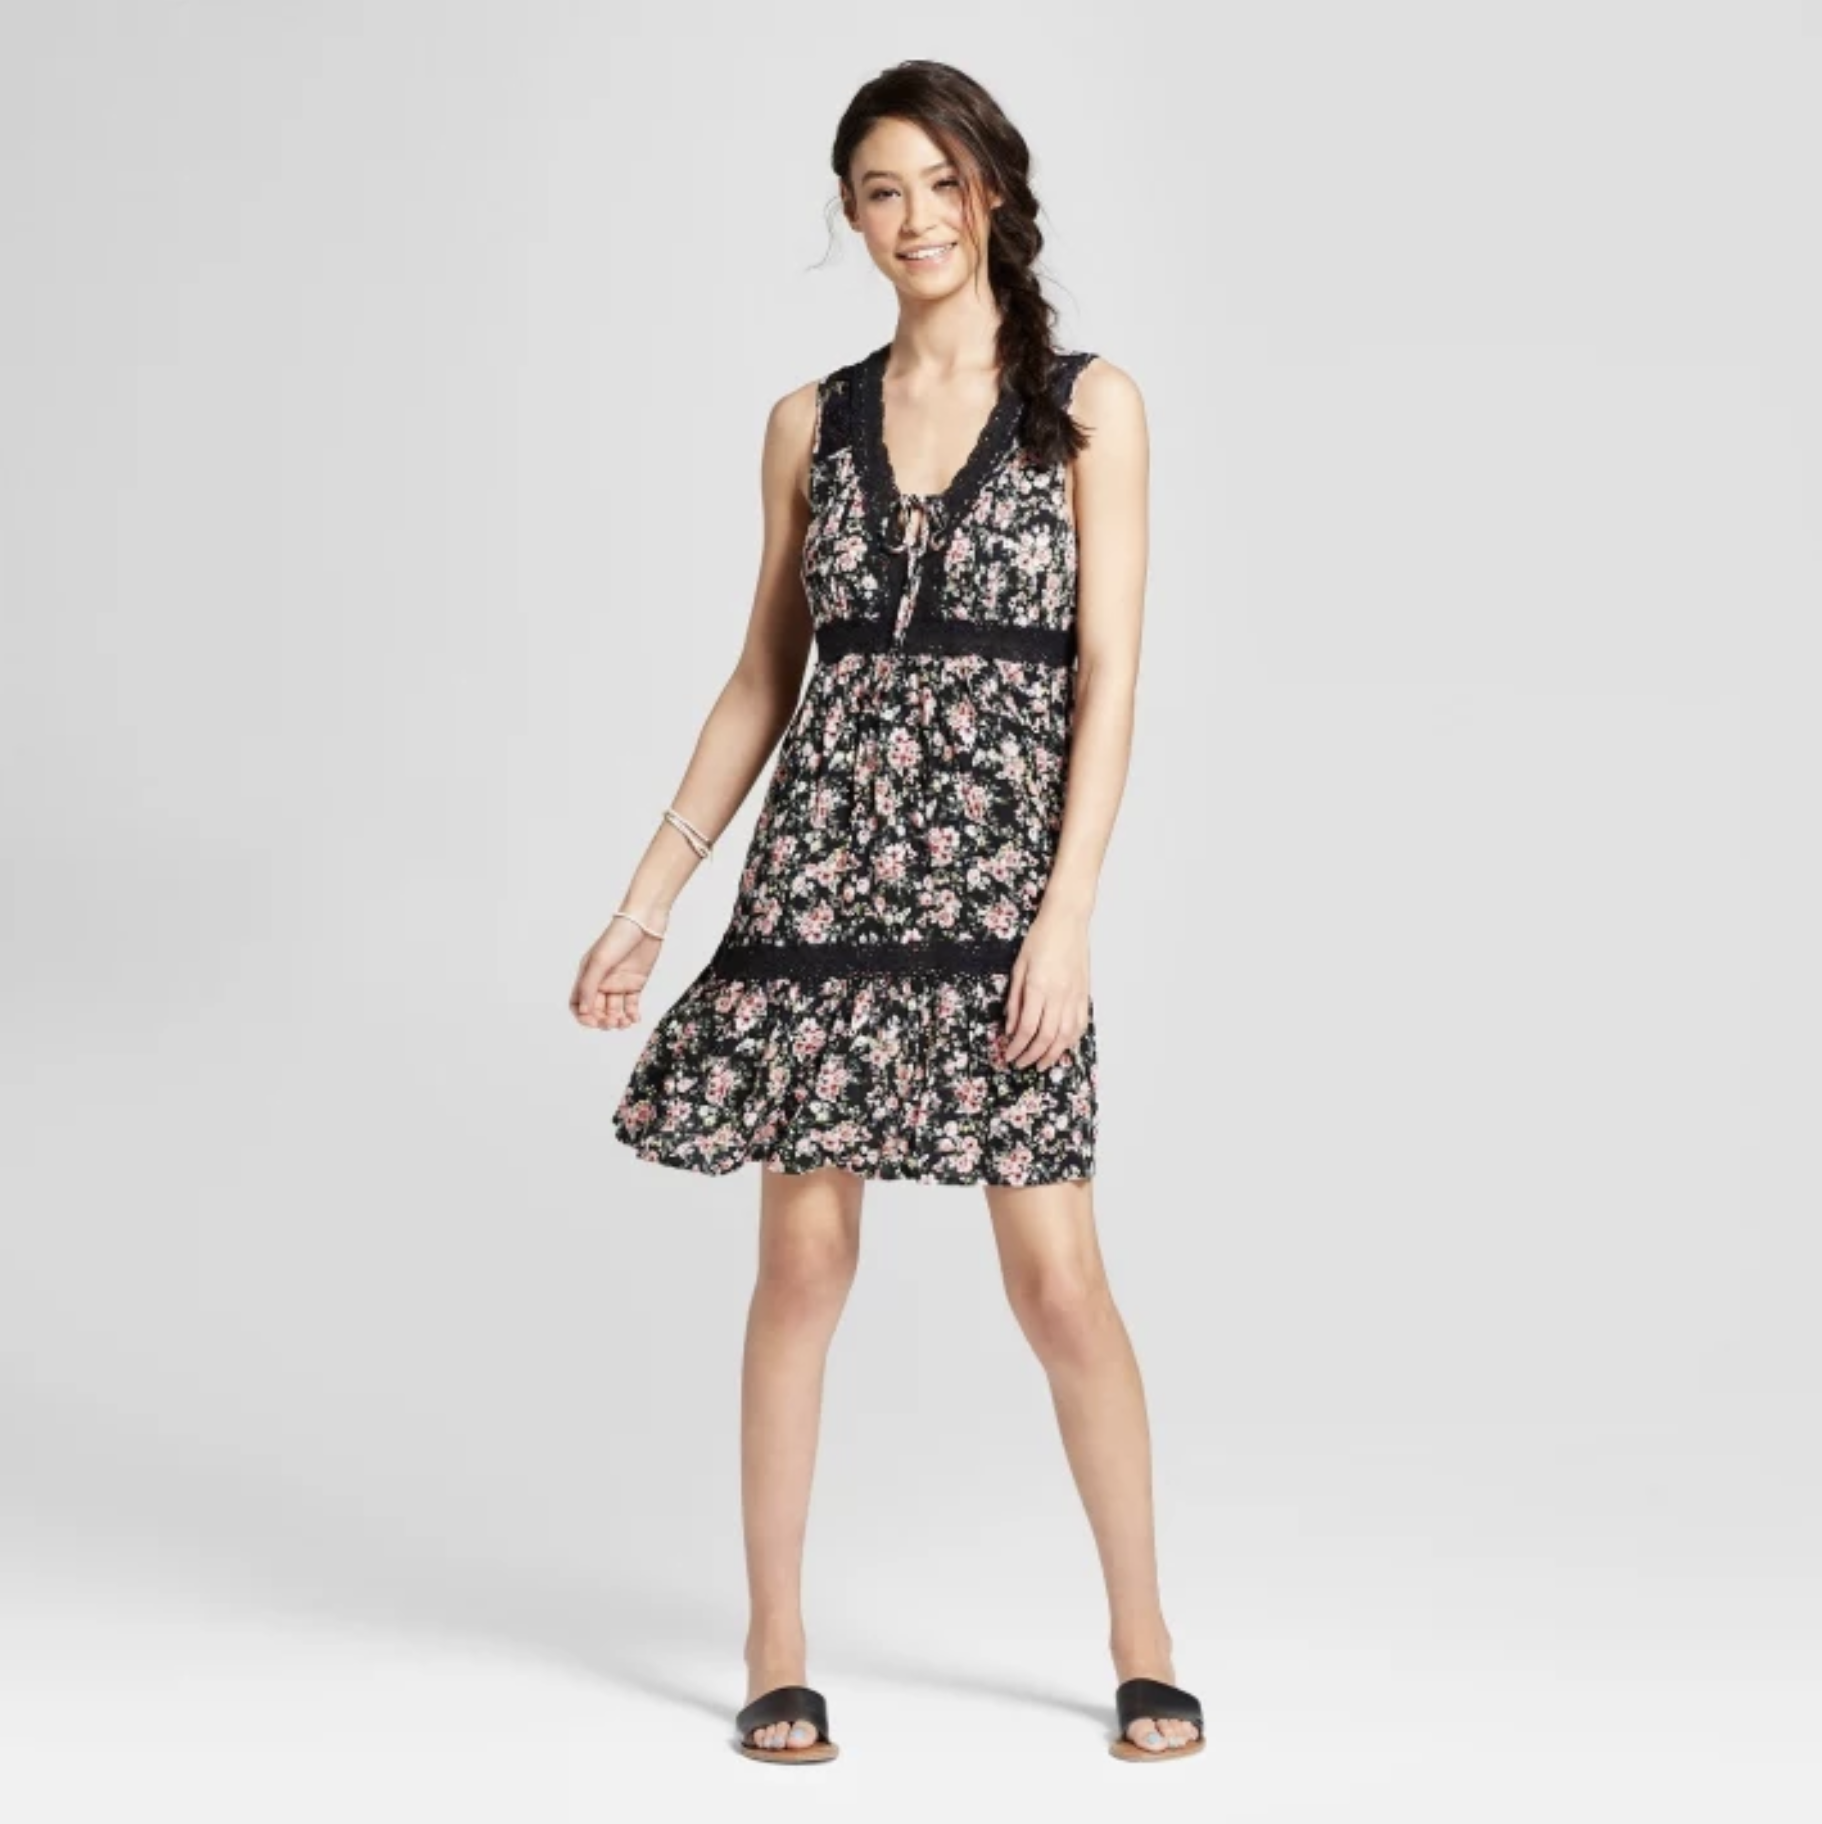 """The Drop Waist - With this fun and flirty drop-waisted dress, you too can give off a summer vibe that says, """"Hey, you wanna meet downtown?Harlem's a little far for me."""""""